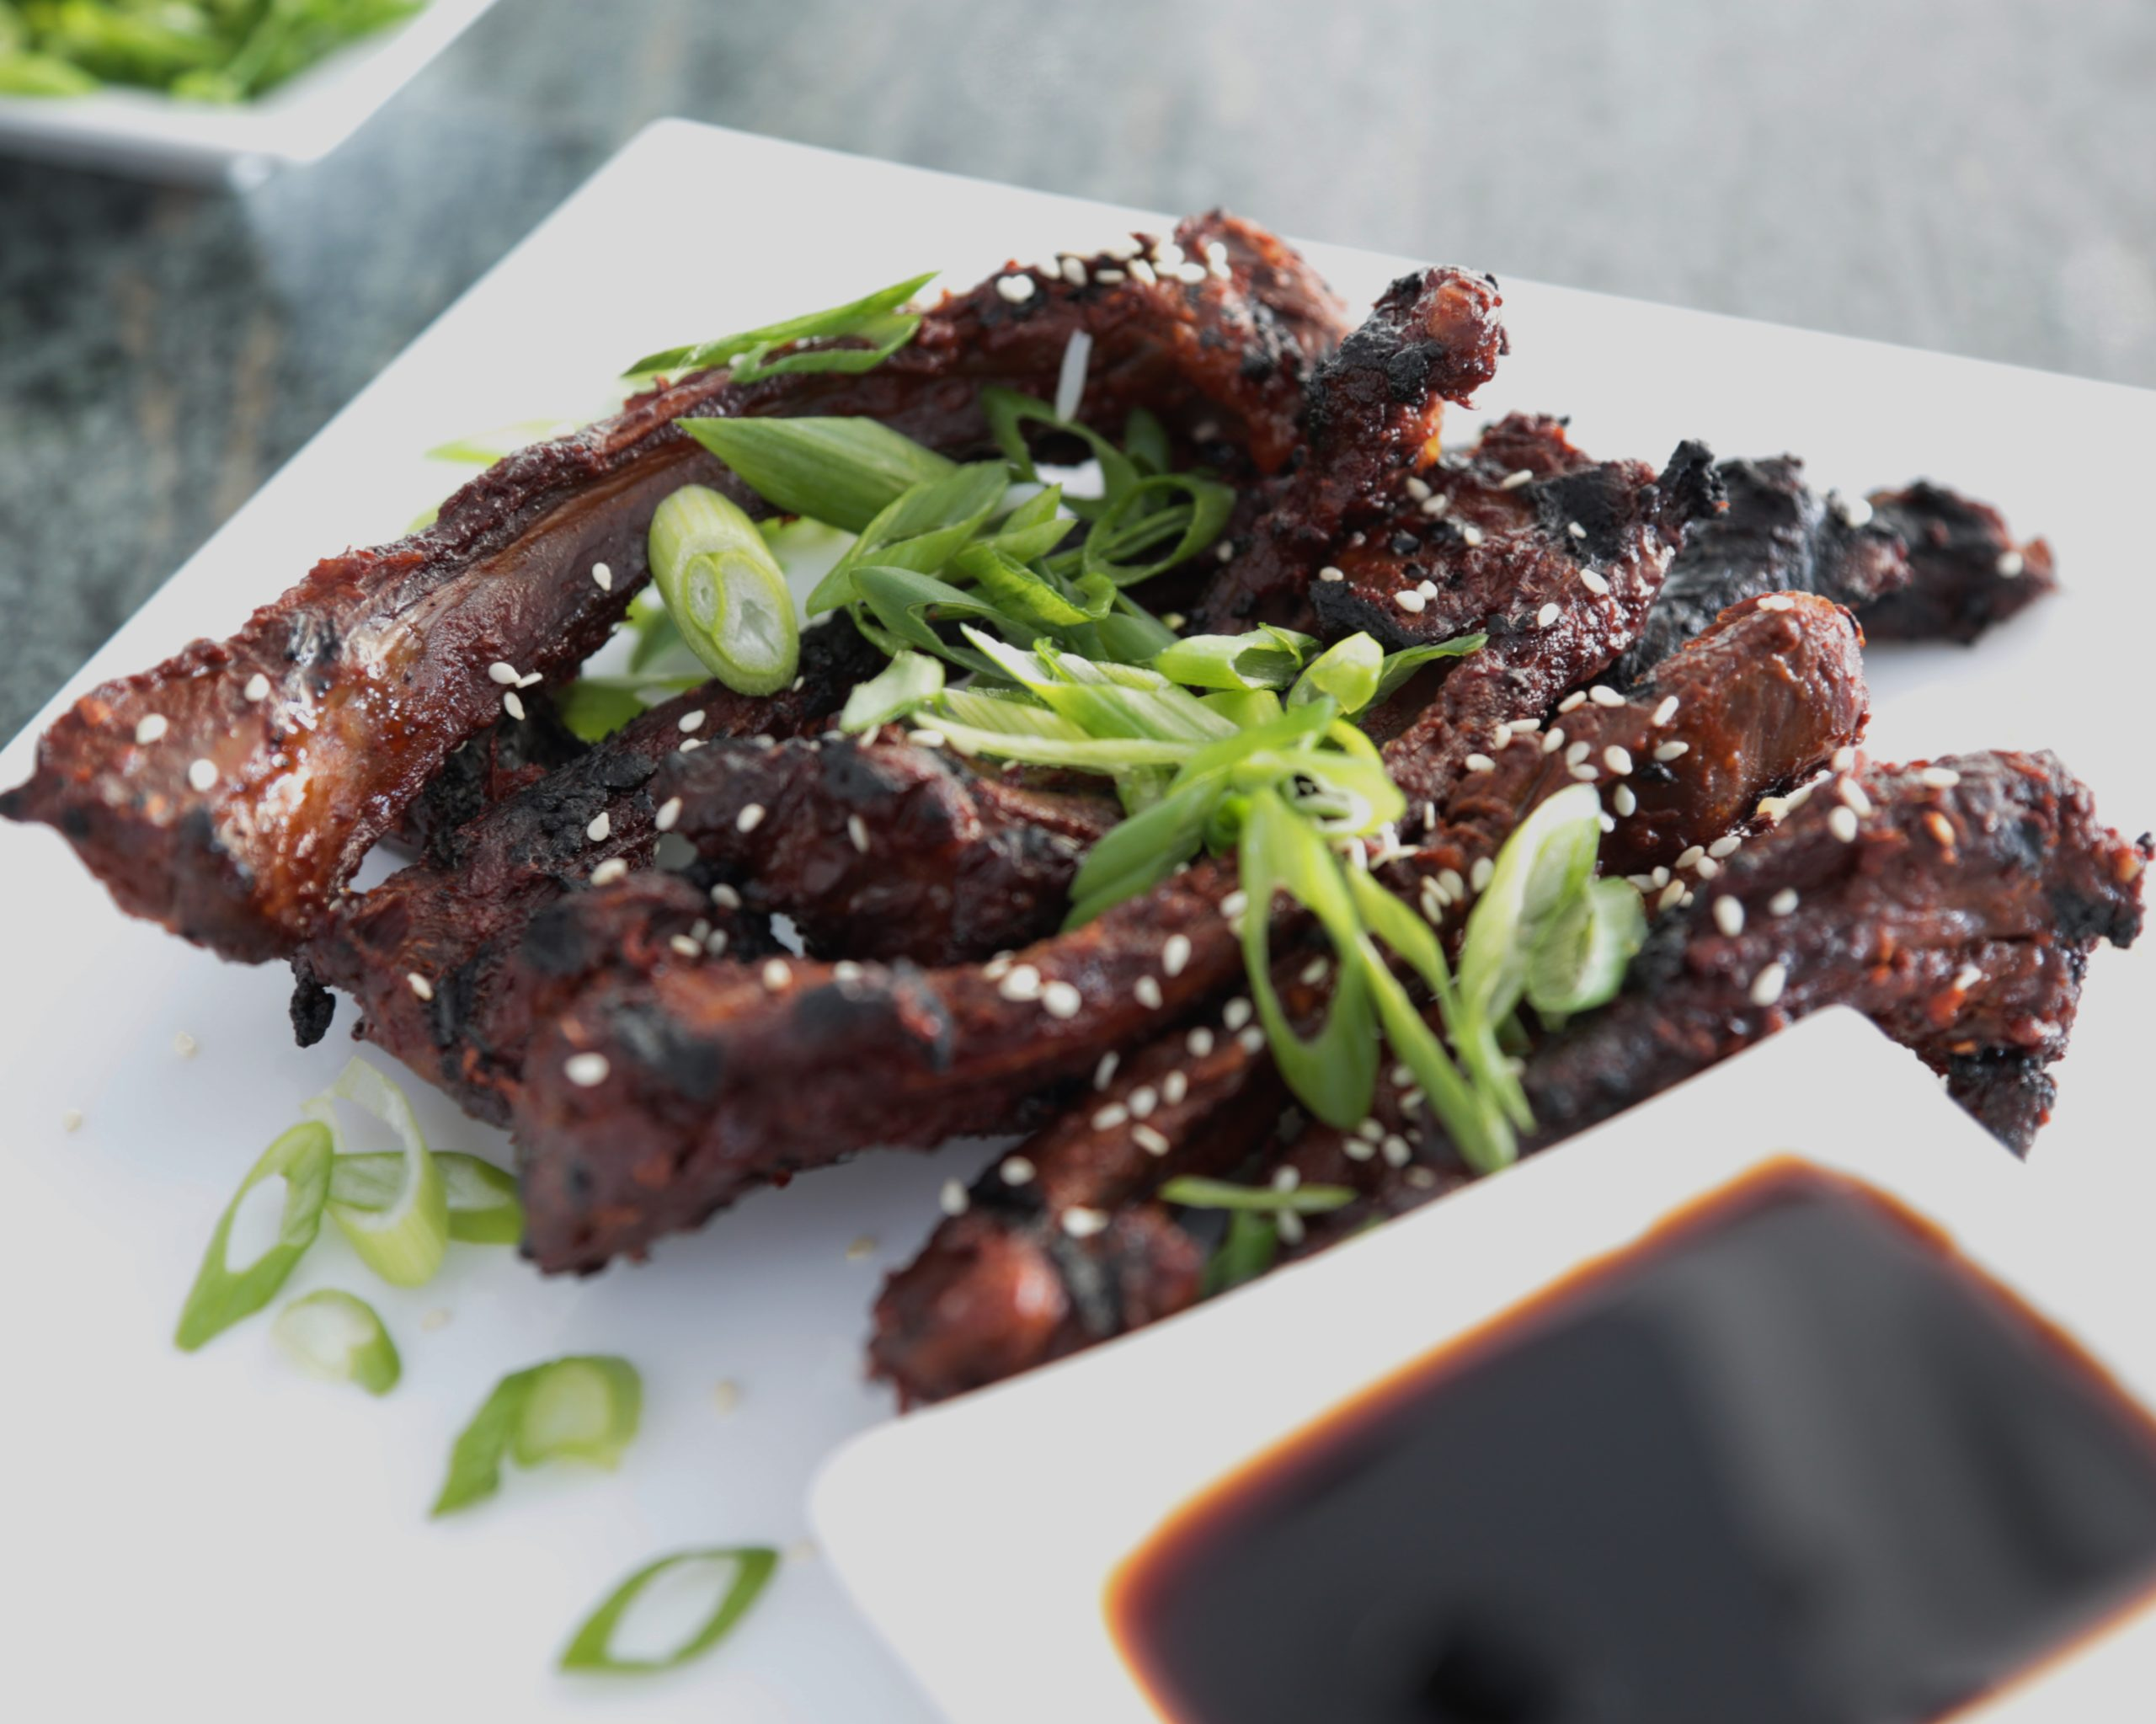 SeaDNA Seal Meat Ribs prepared by Canada Smartest Kitchen